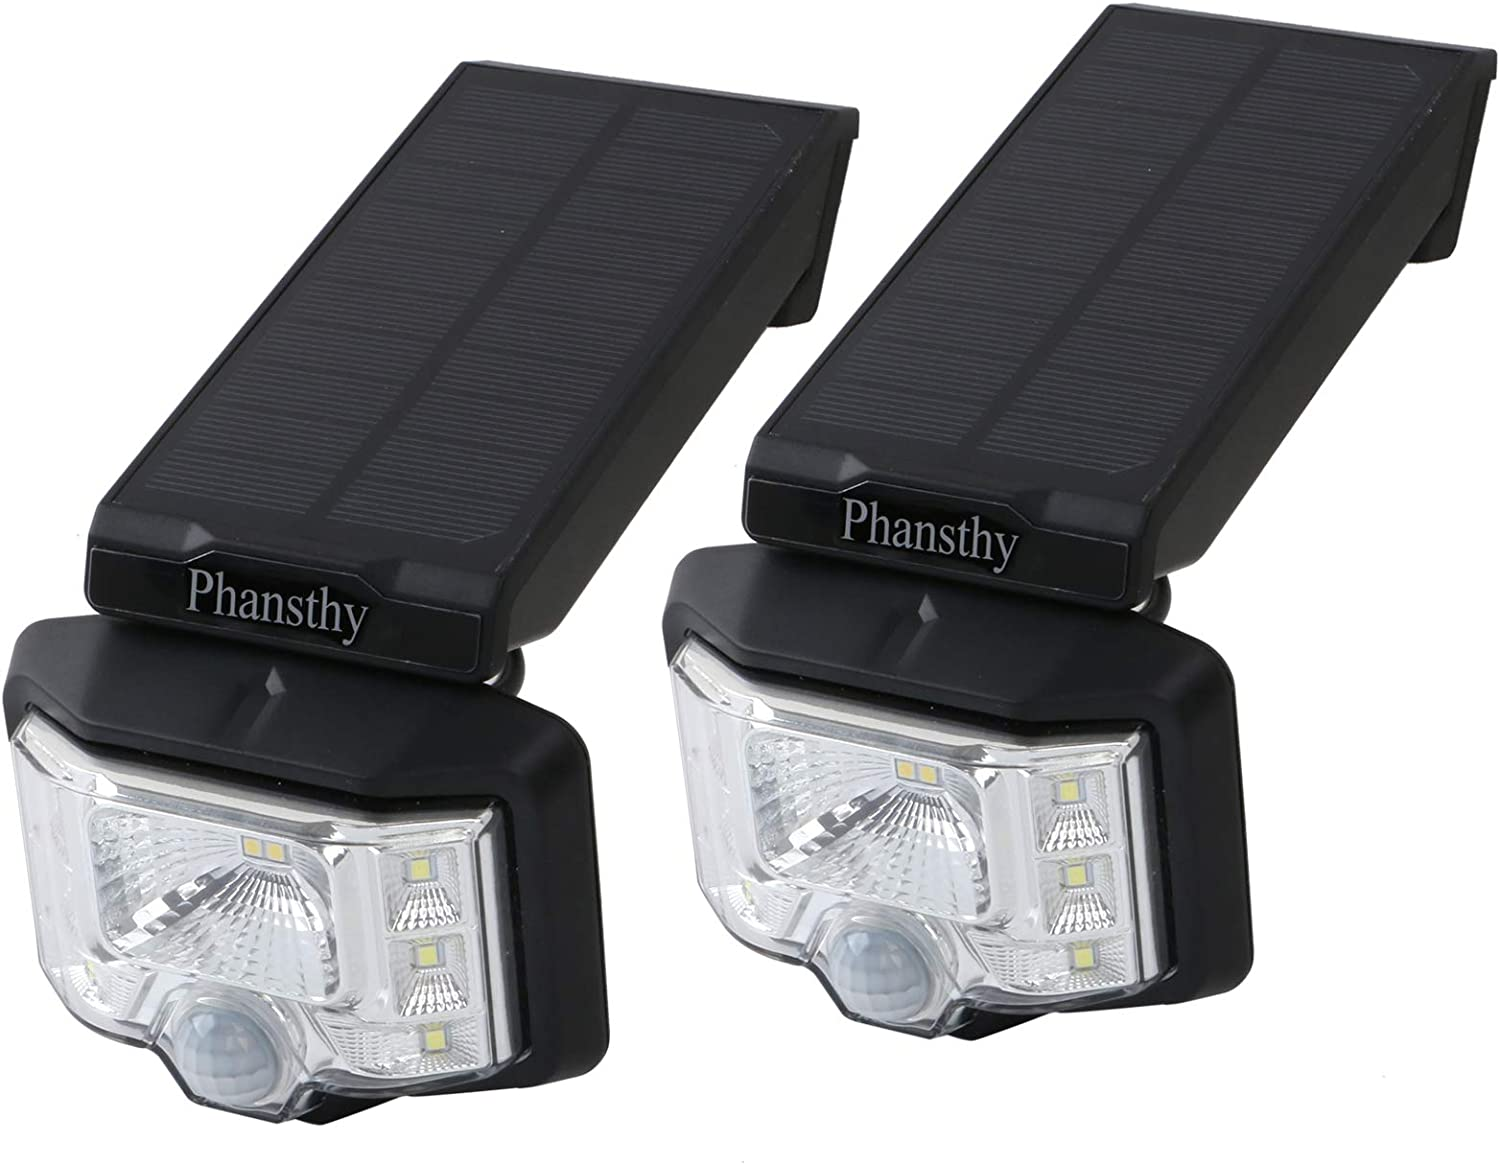 Phansthy Solar Light Outdoor 8 LED Wireless Wide Angle Motion Sensor Security Light with IP65 Grade Waterproof for Front Door Yard Garage Deck Porch Shed Walkway